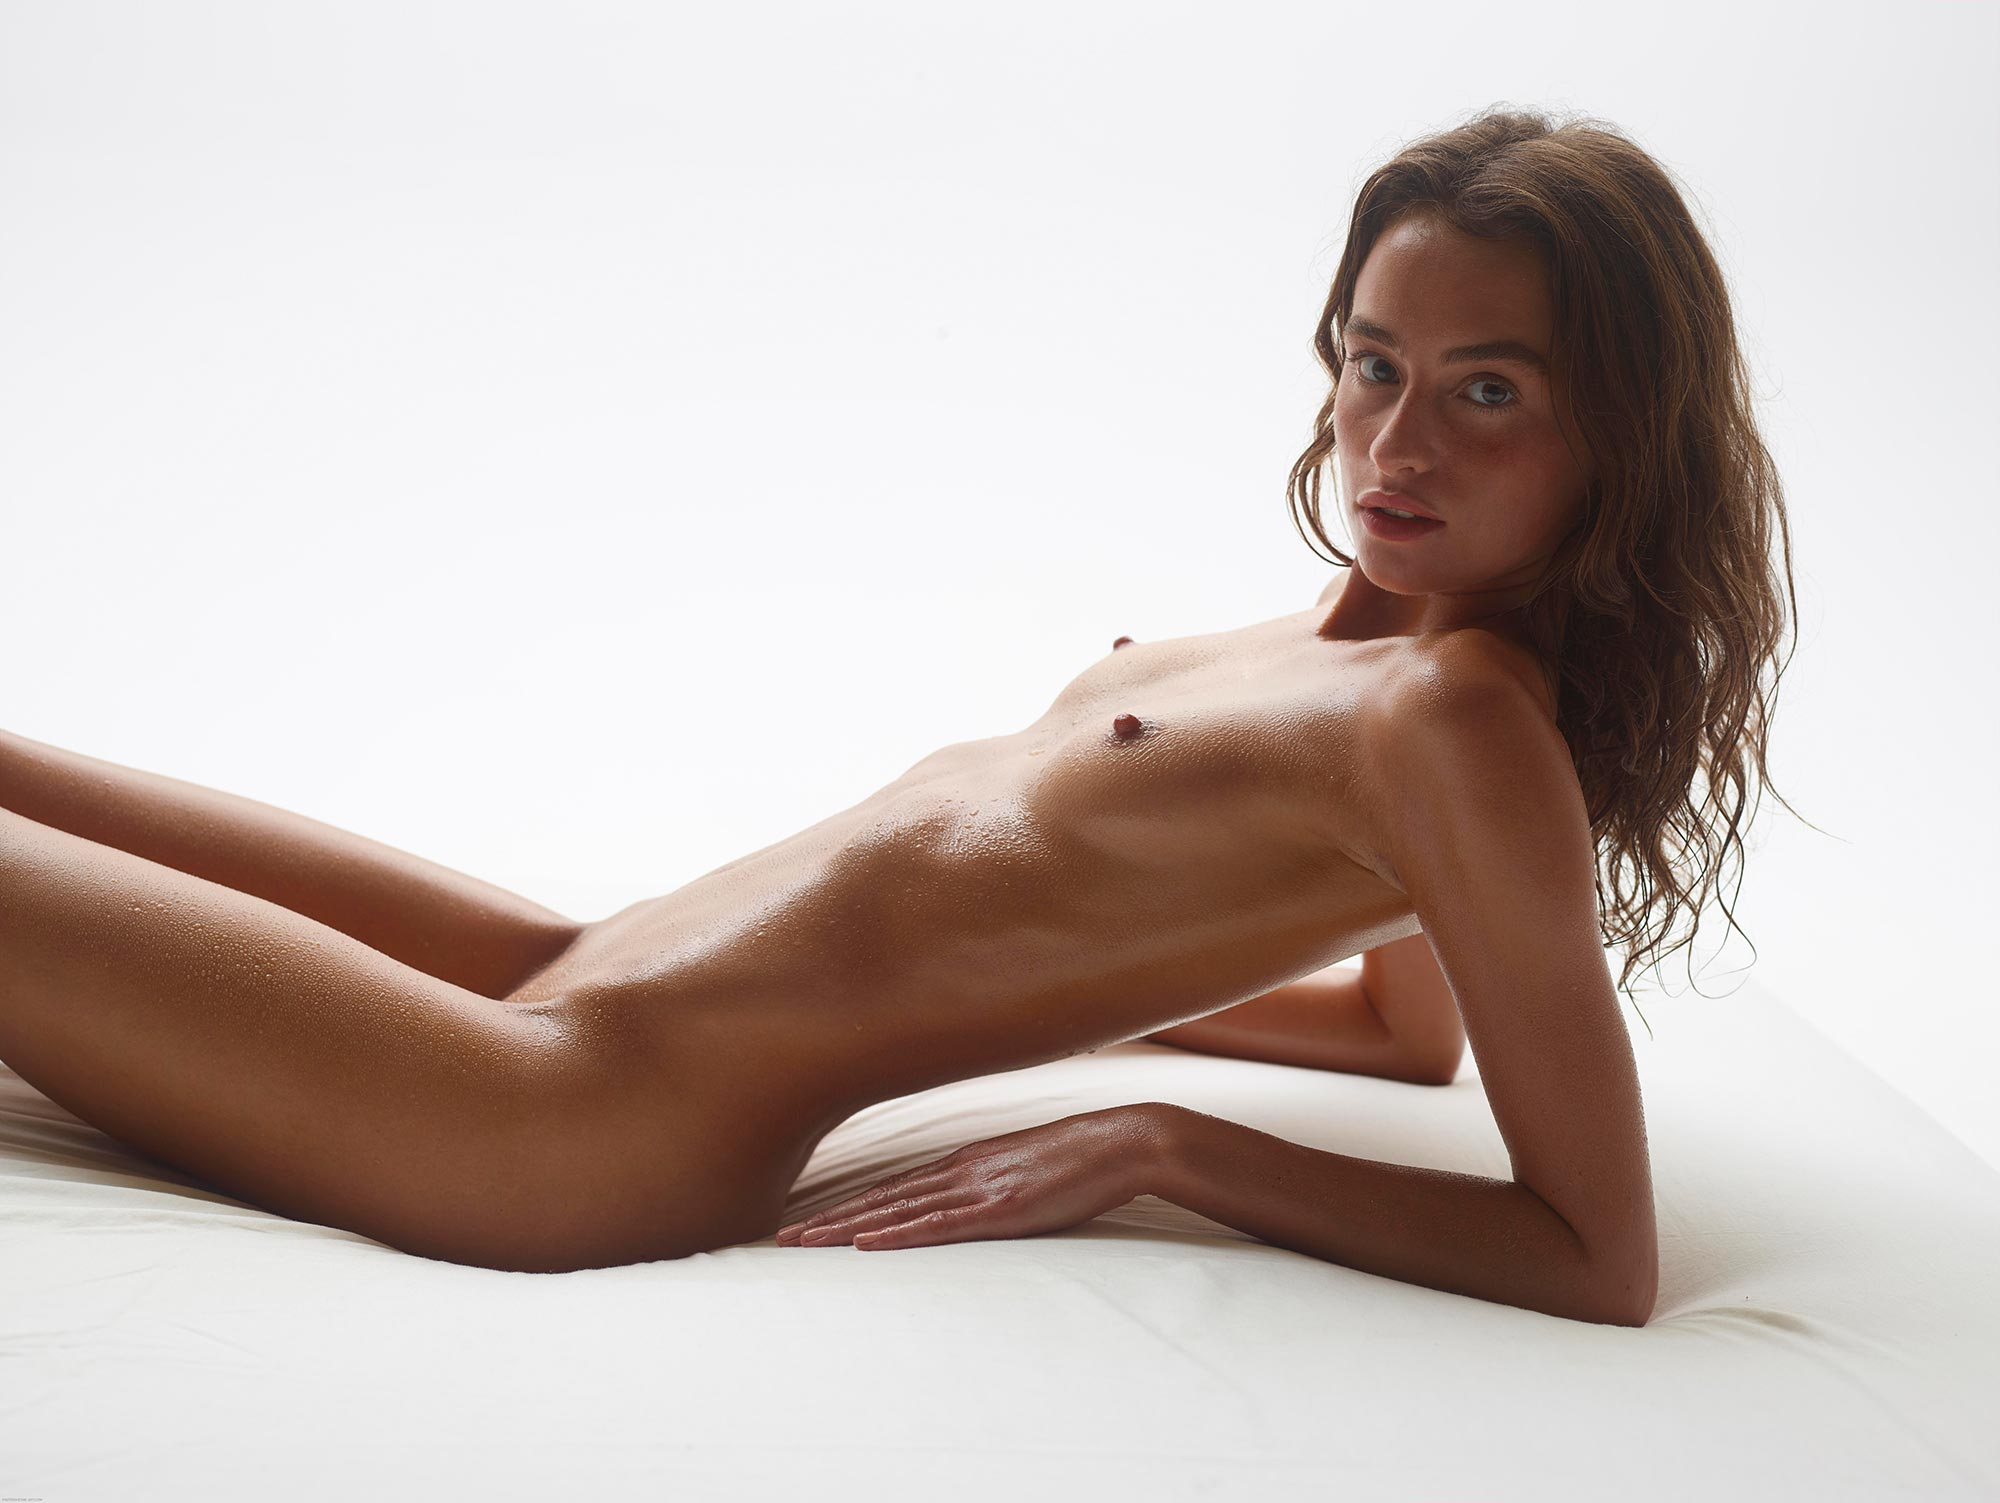 Teen nude art models get naked in a group